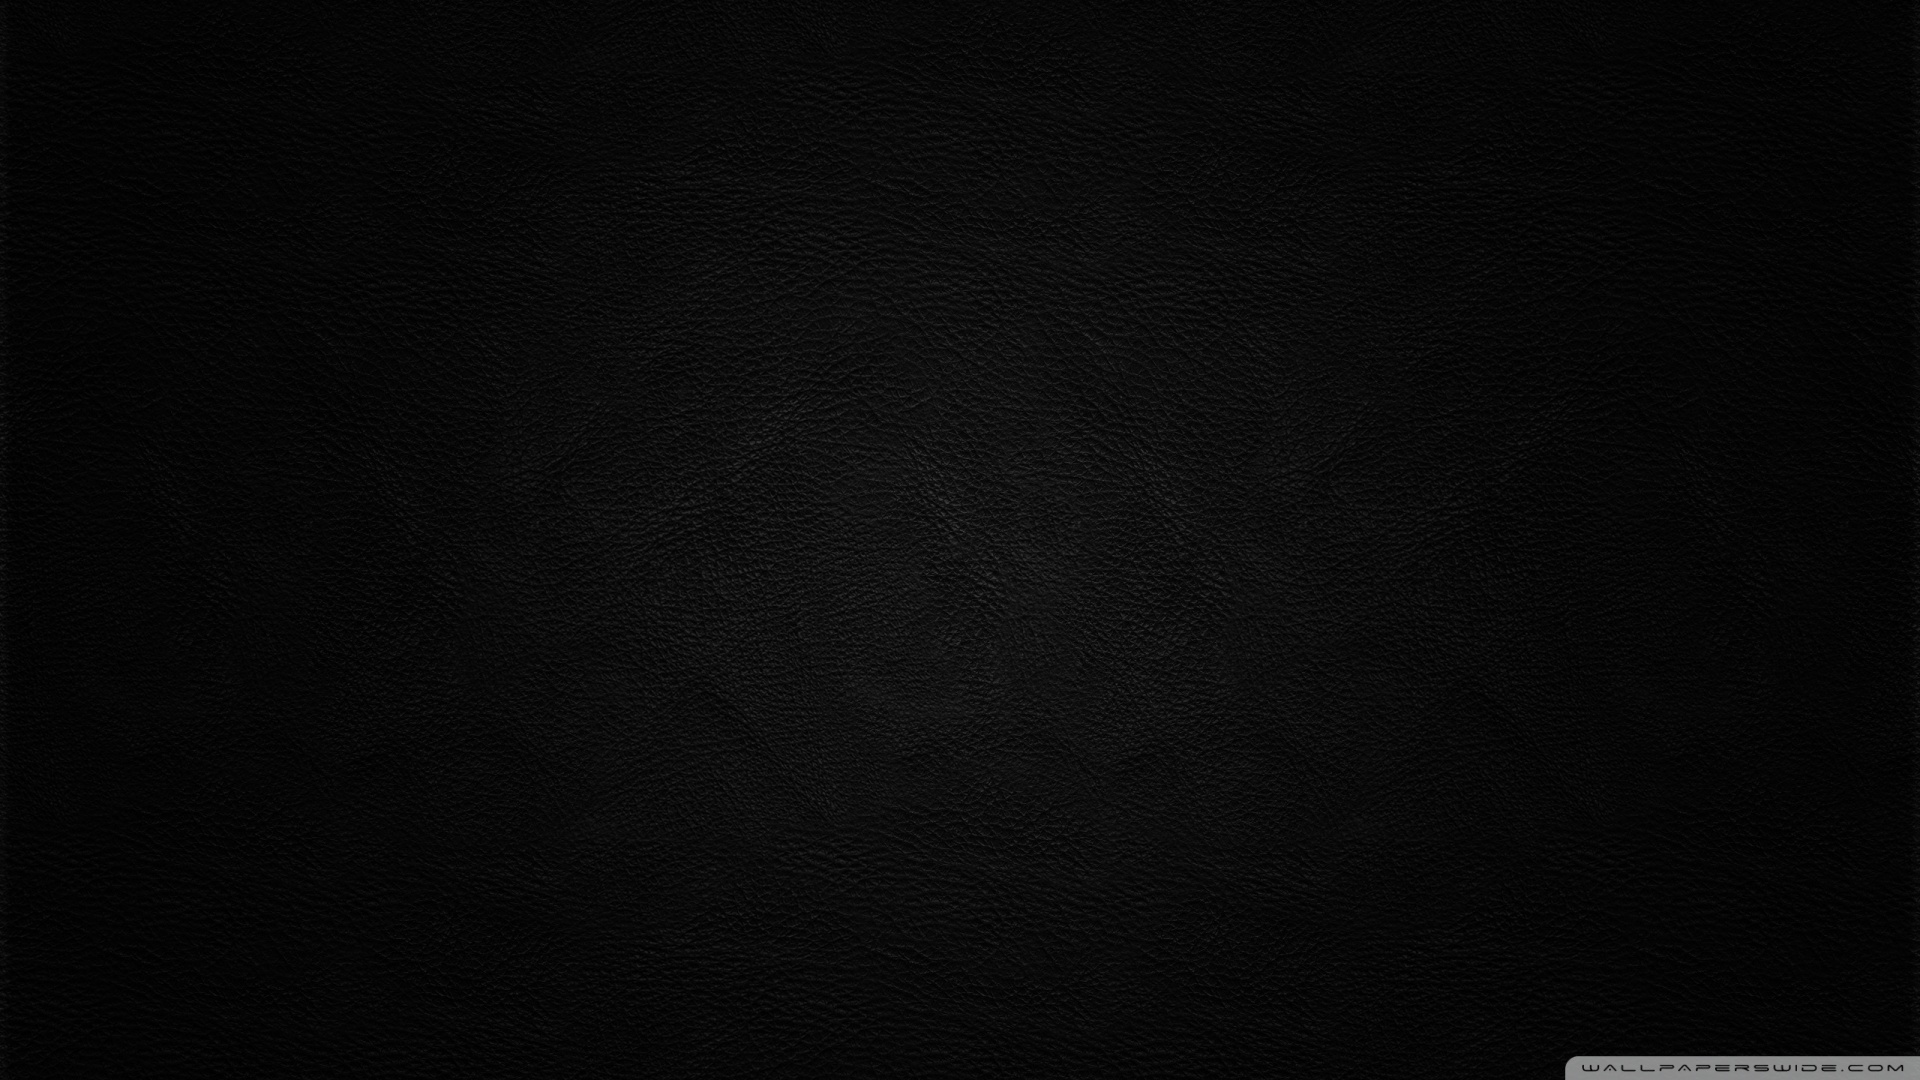 Background Leather Wallpaper 1920x1080 Black Background Leather 1920x1080